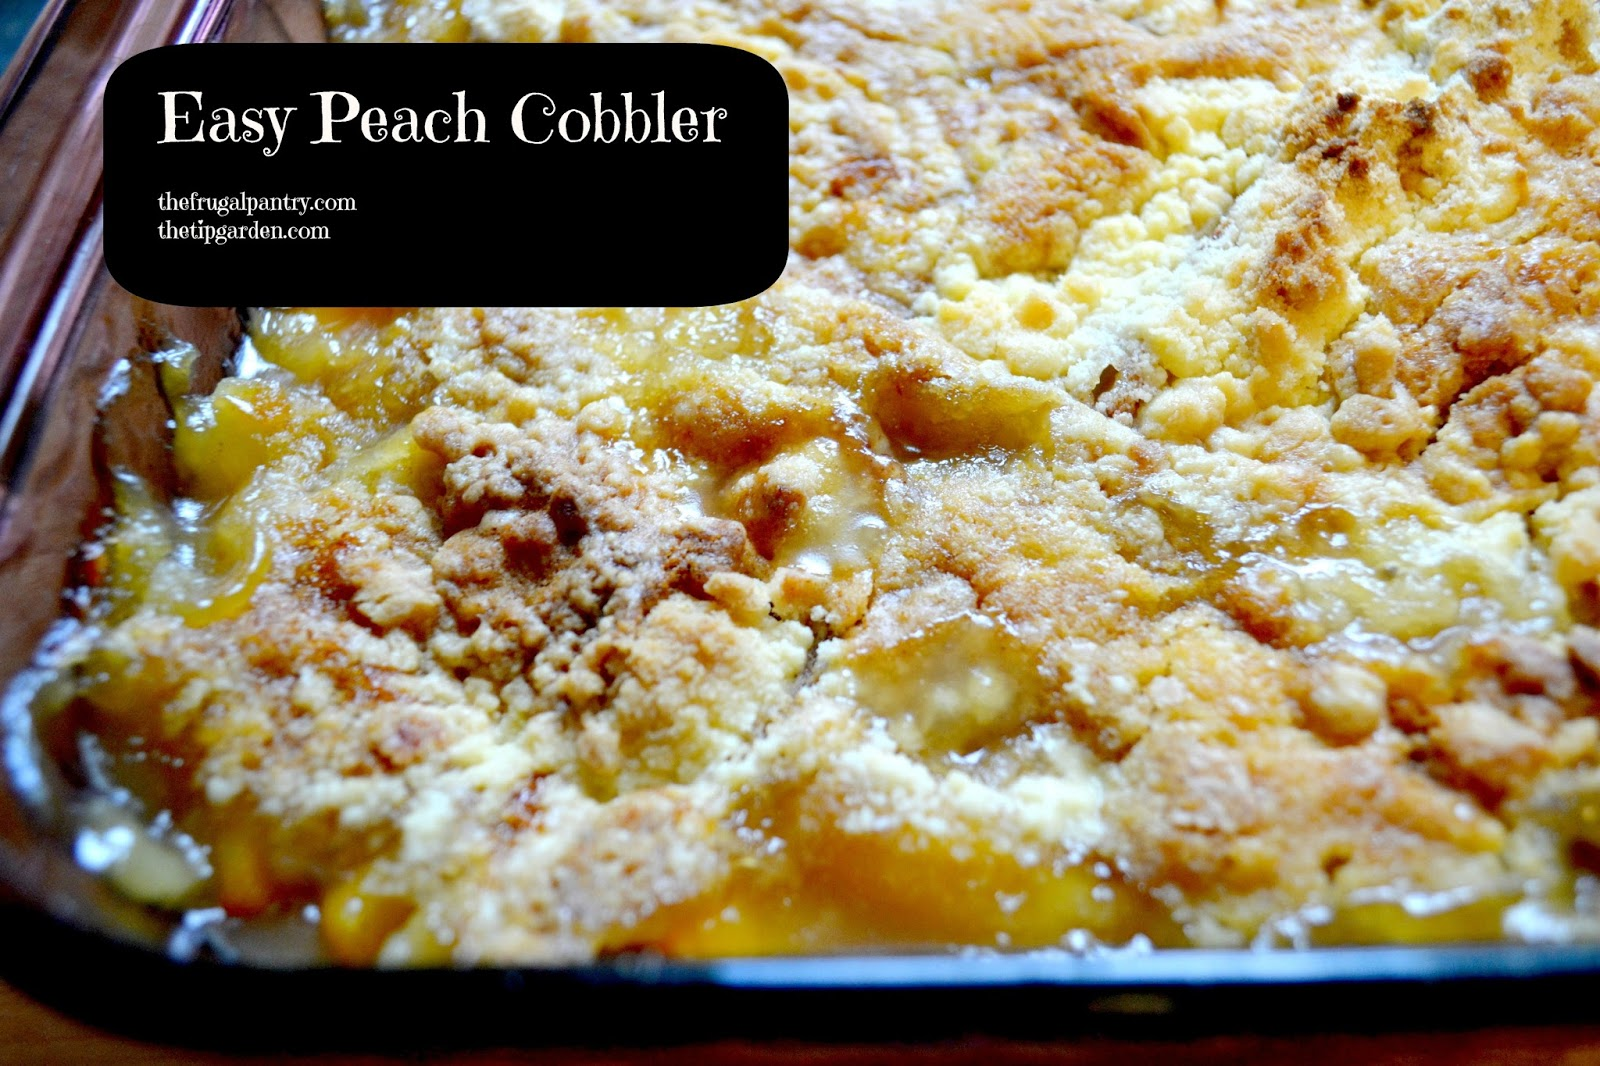 Easy cobbler recipe with yellow cake mix